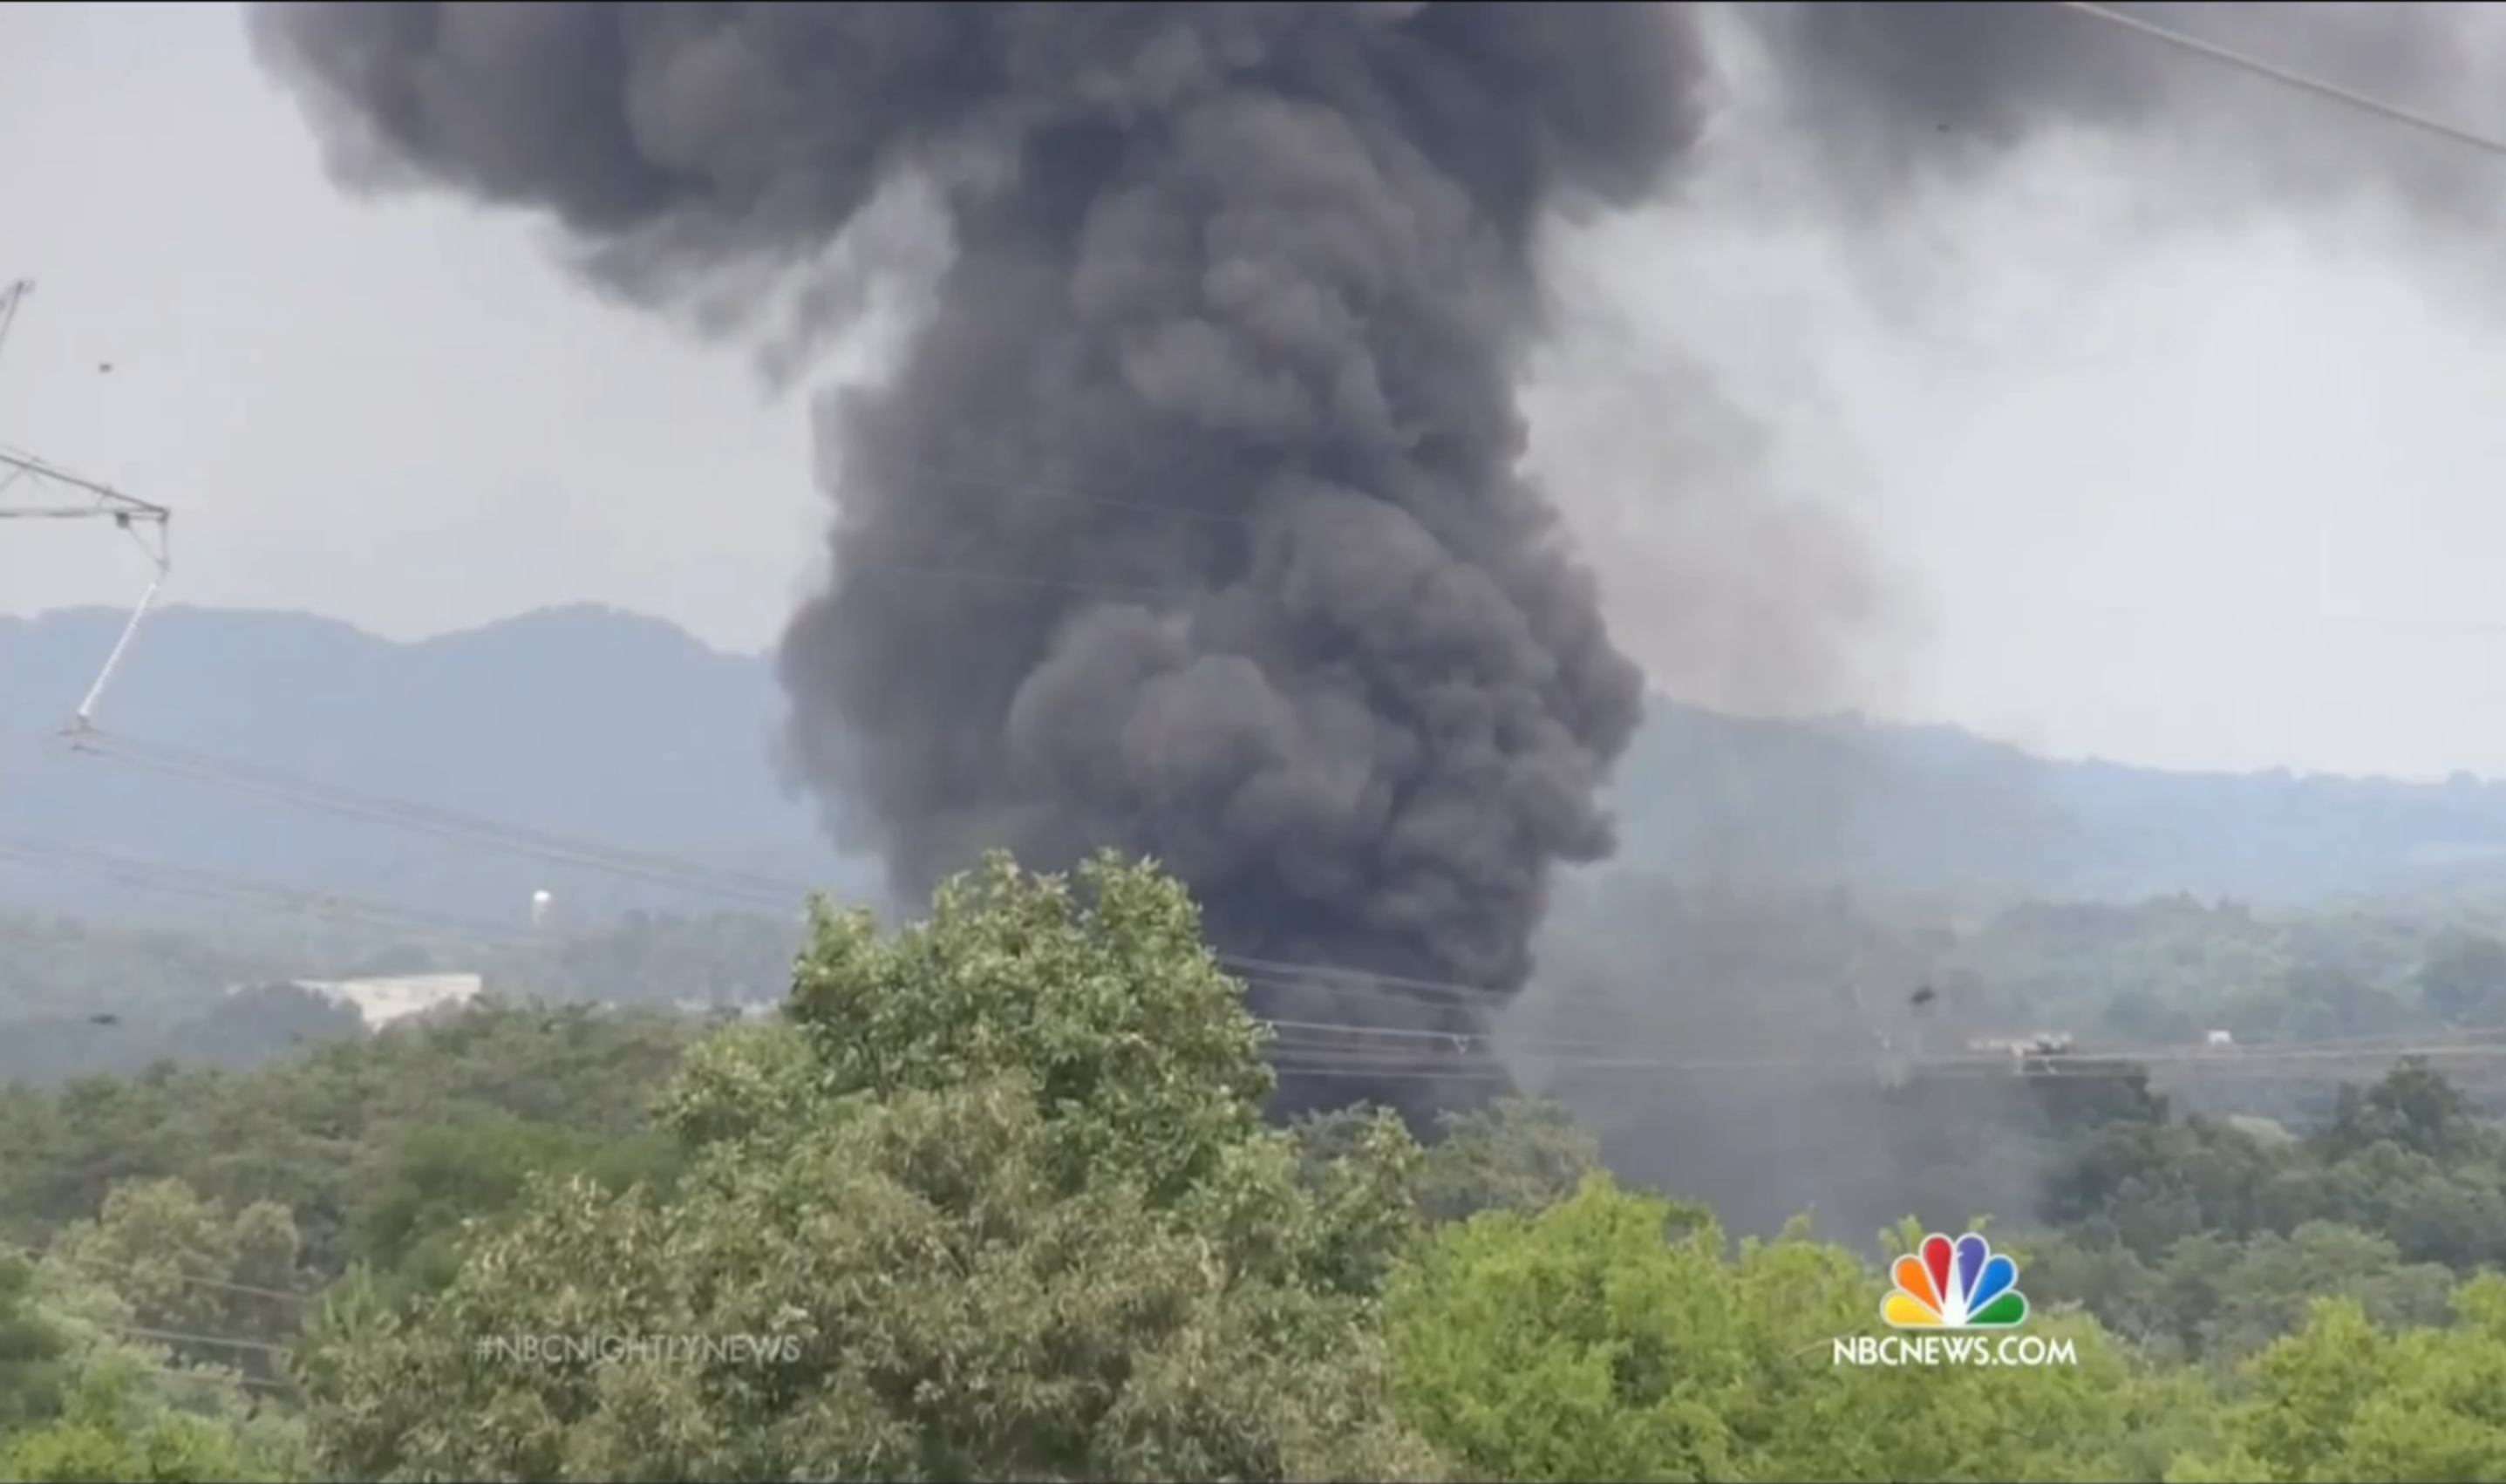 TN Town Still Reeling After 5,000 Evacuated in Toxic Chemical 'Bomb Train' Explosion